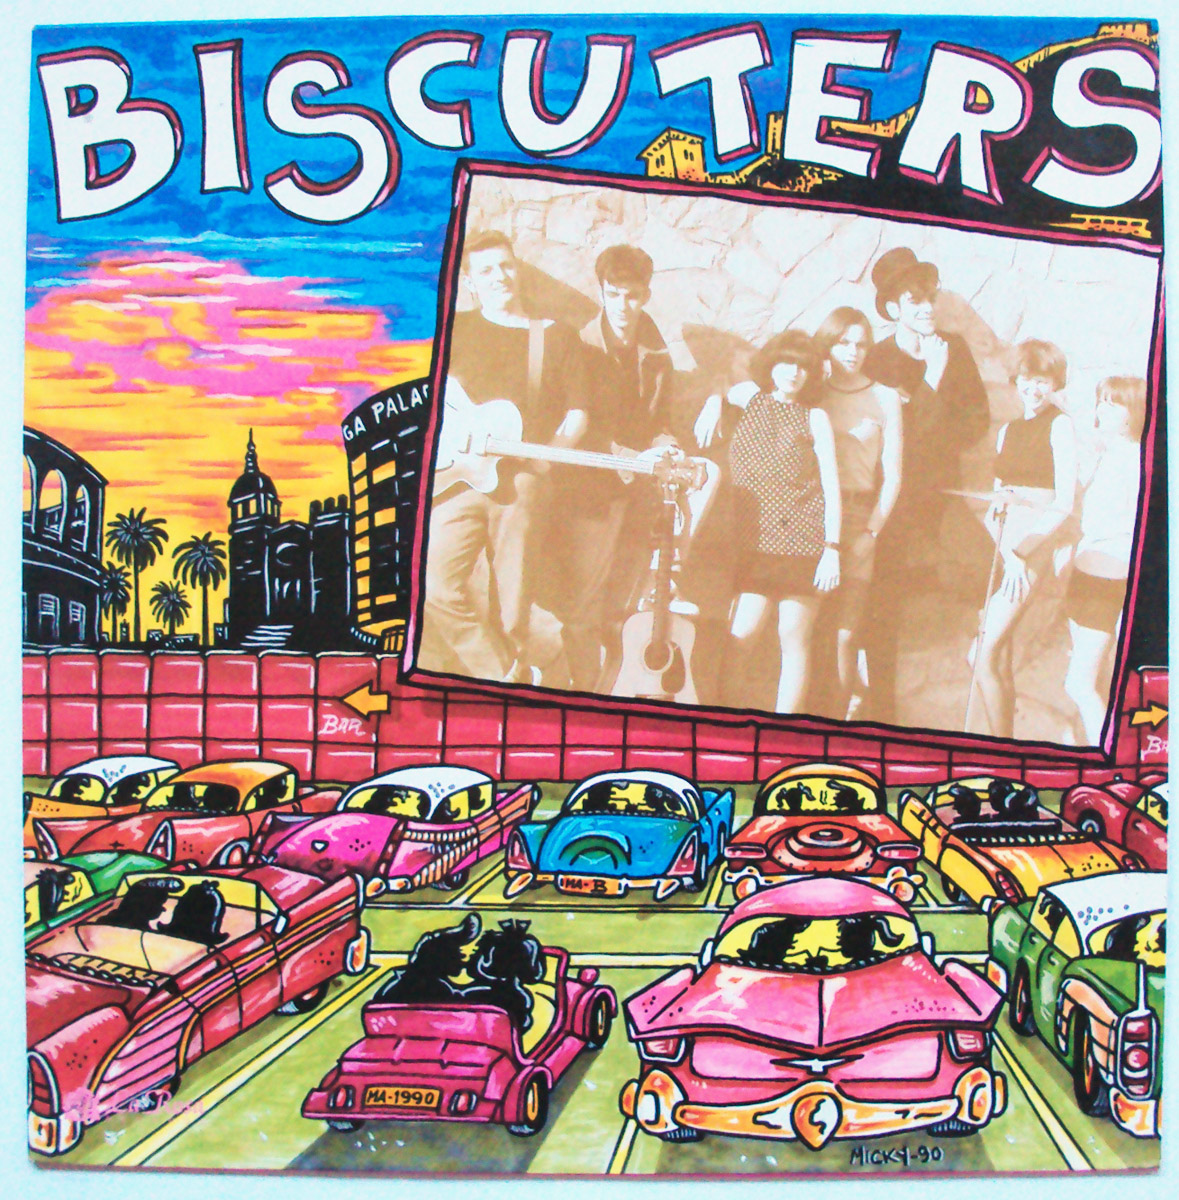 Biscuters biscuters